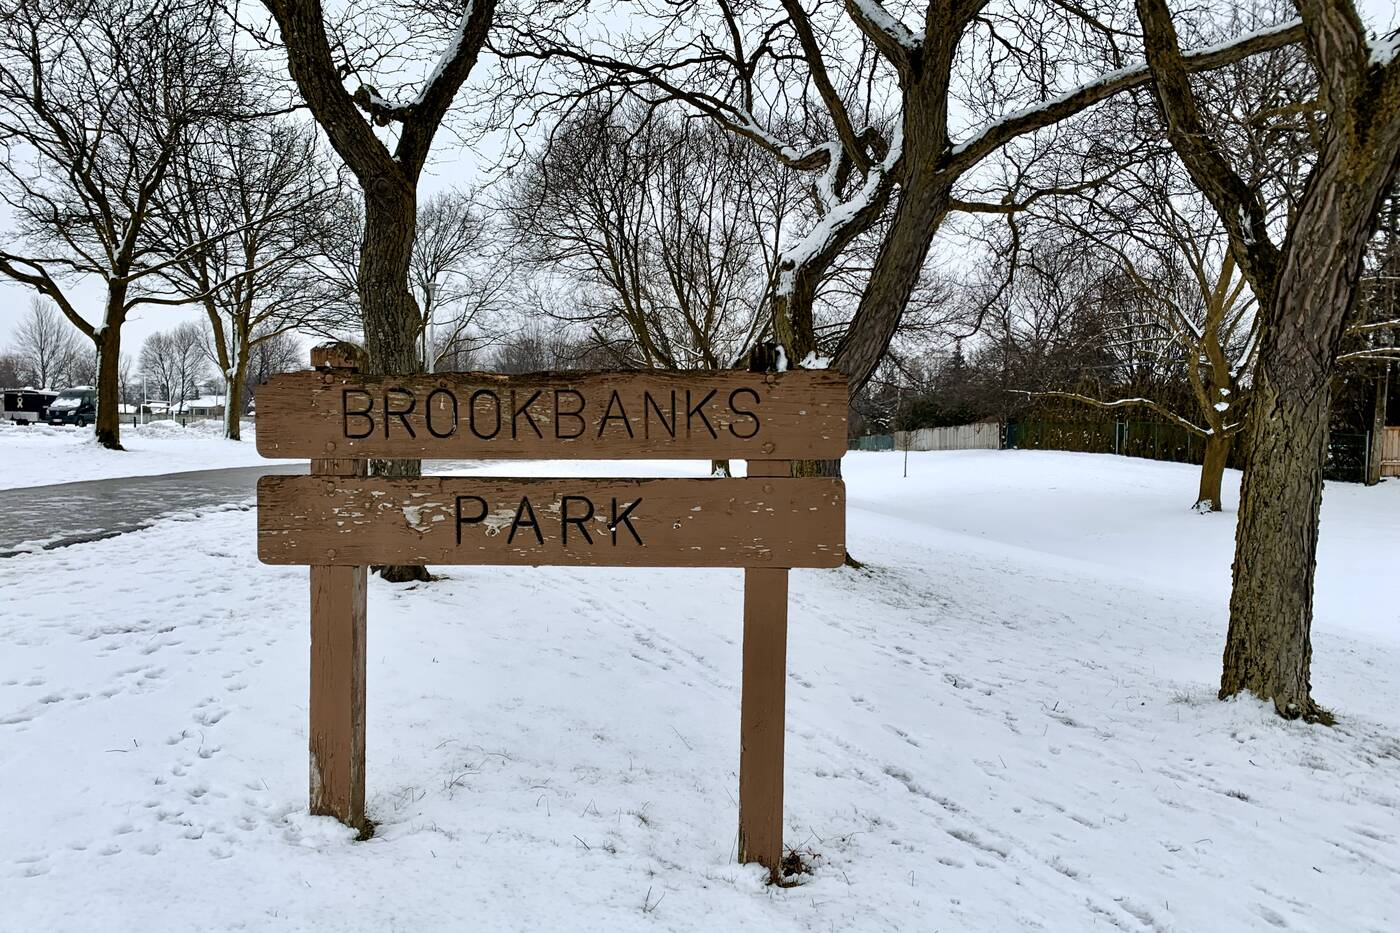 brookbanks park